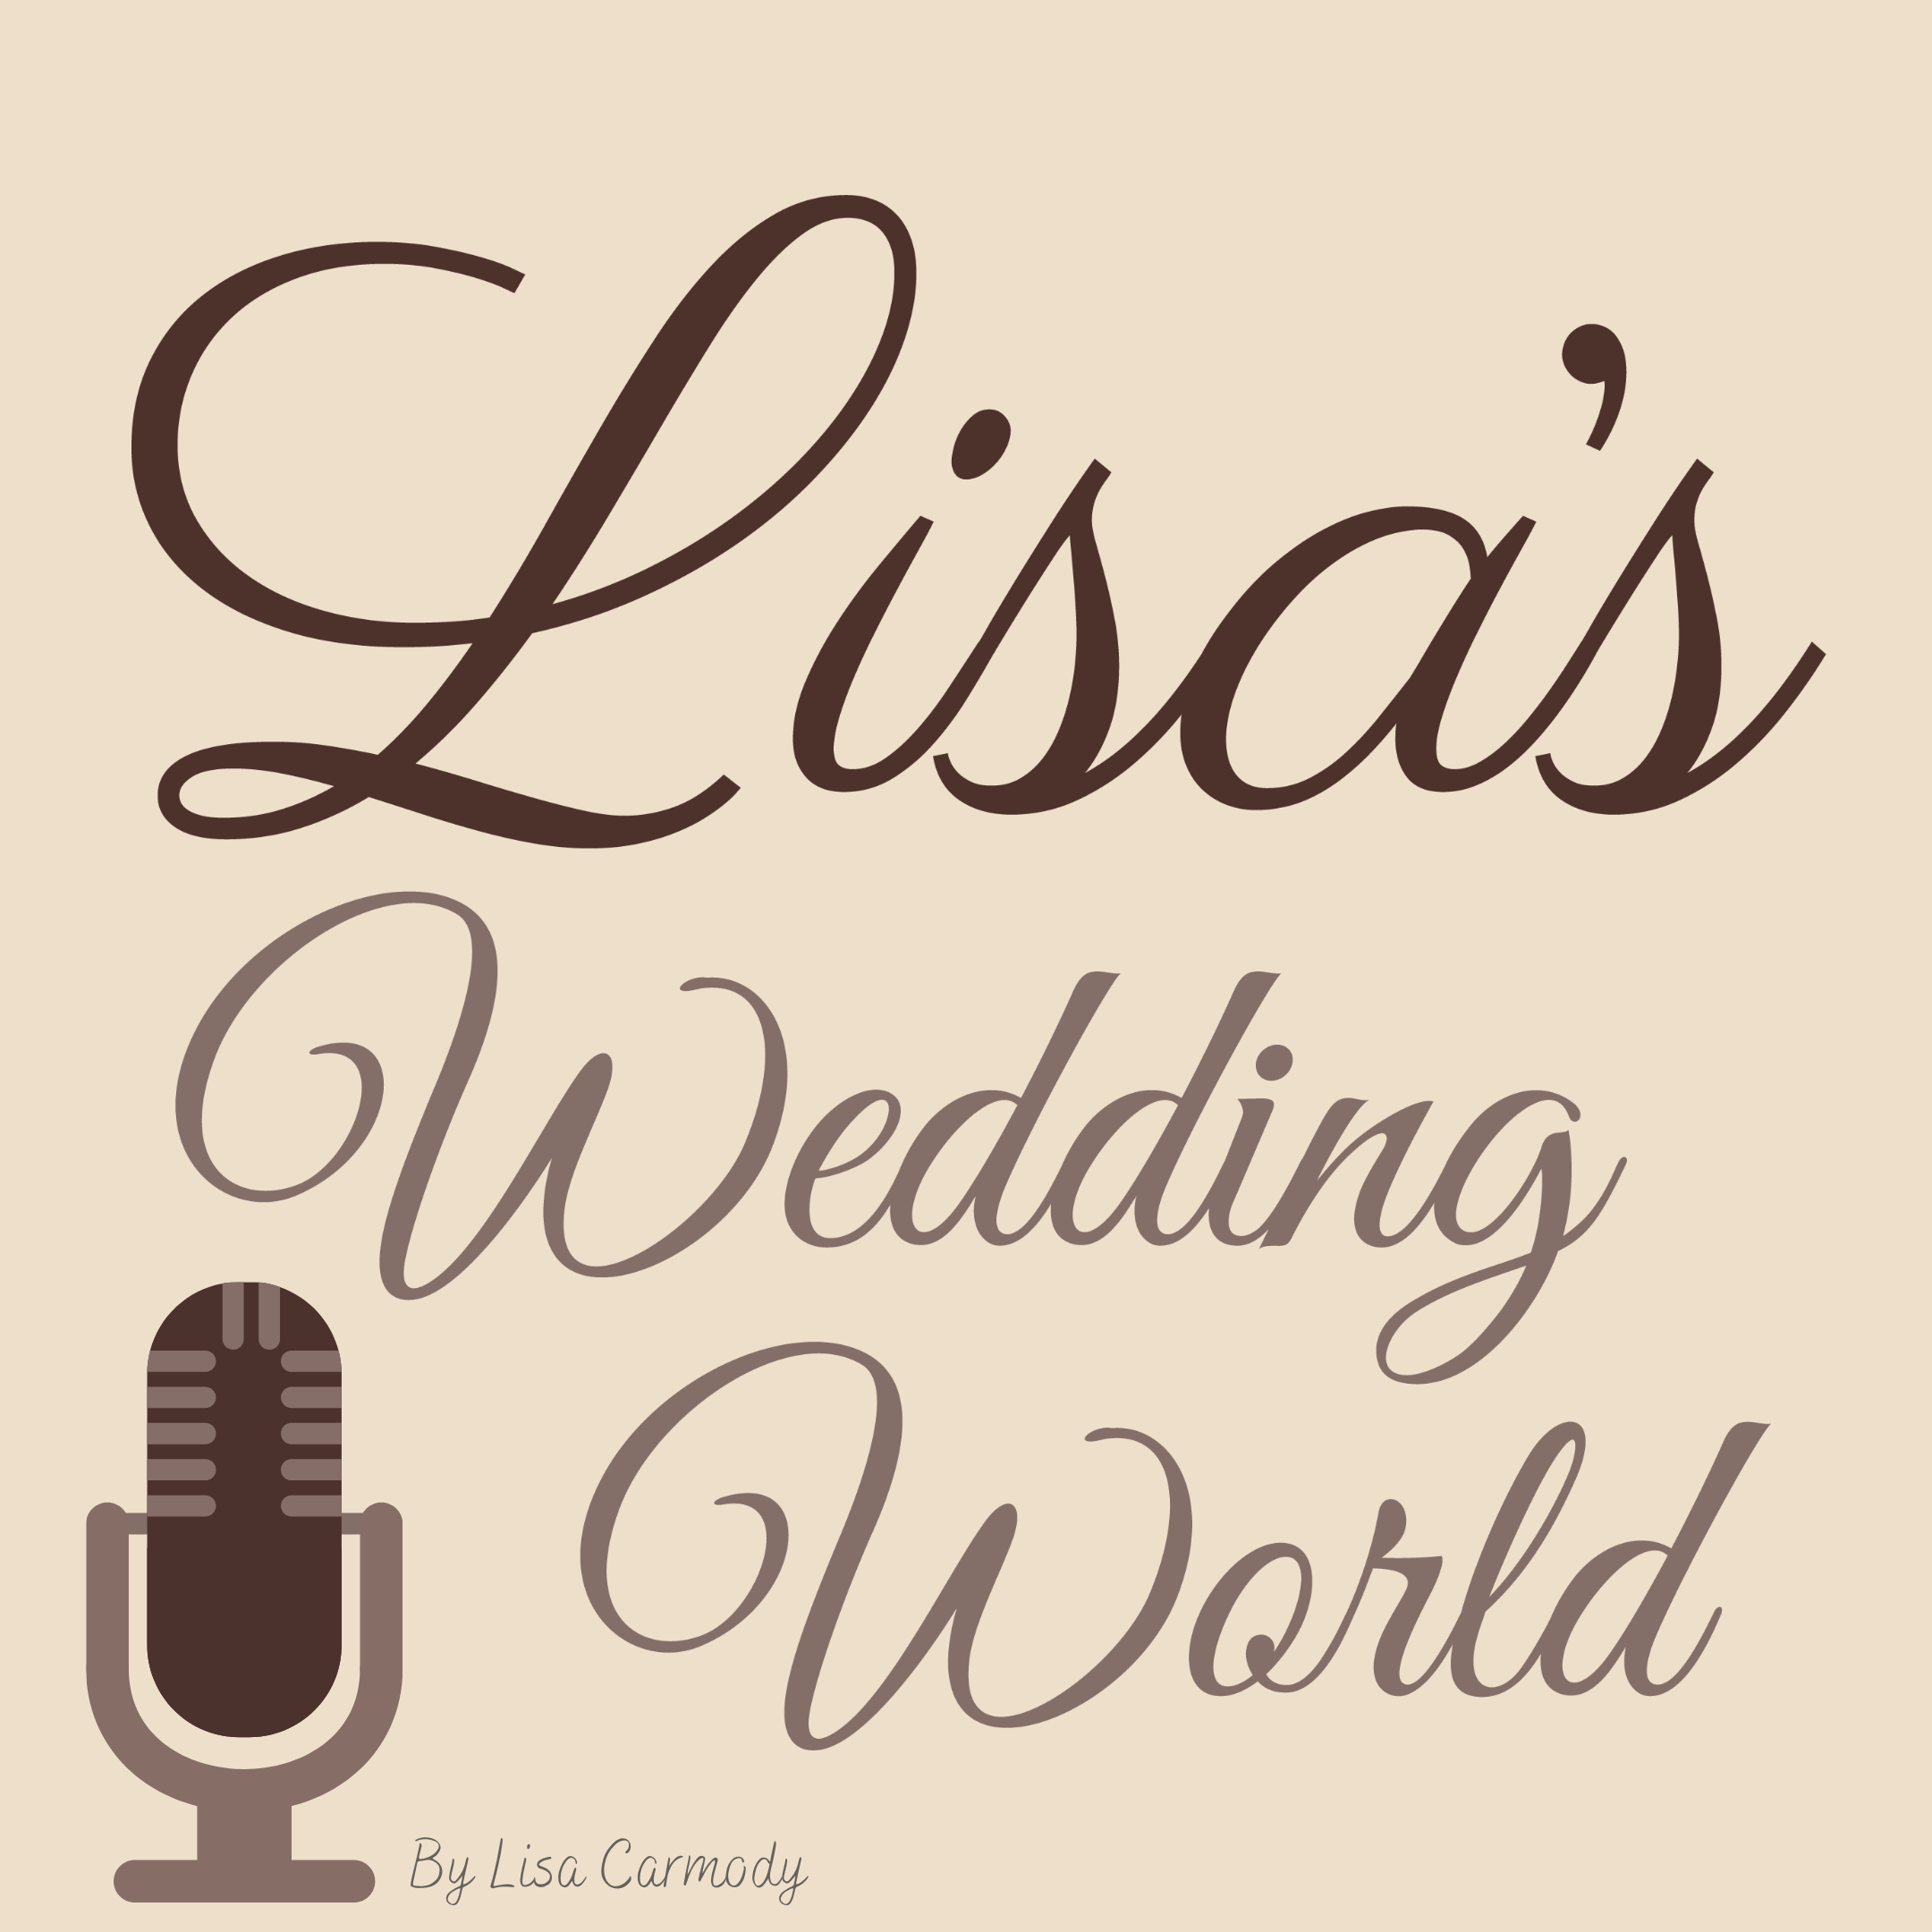 Lisa's Wedding World podcast